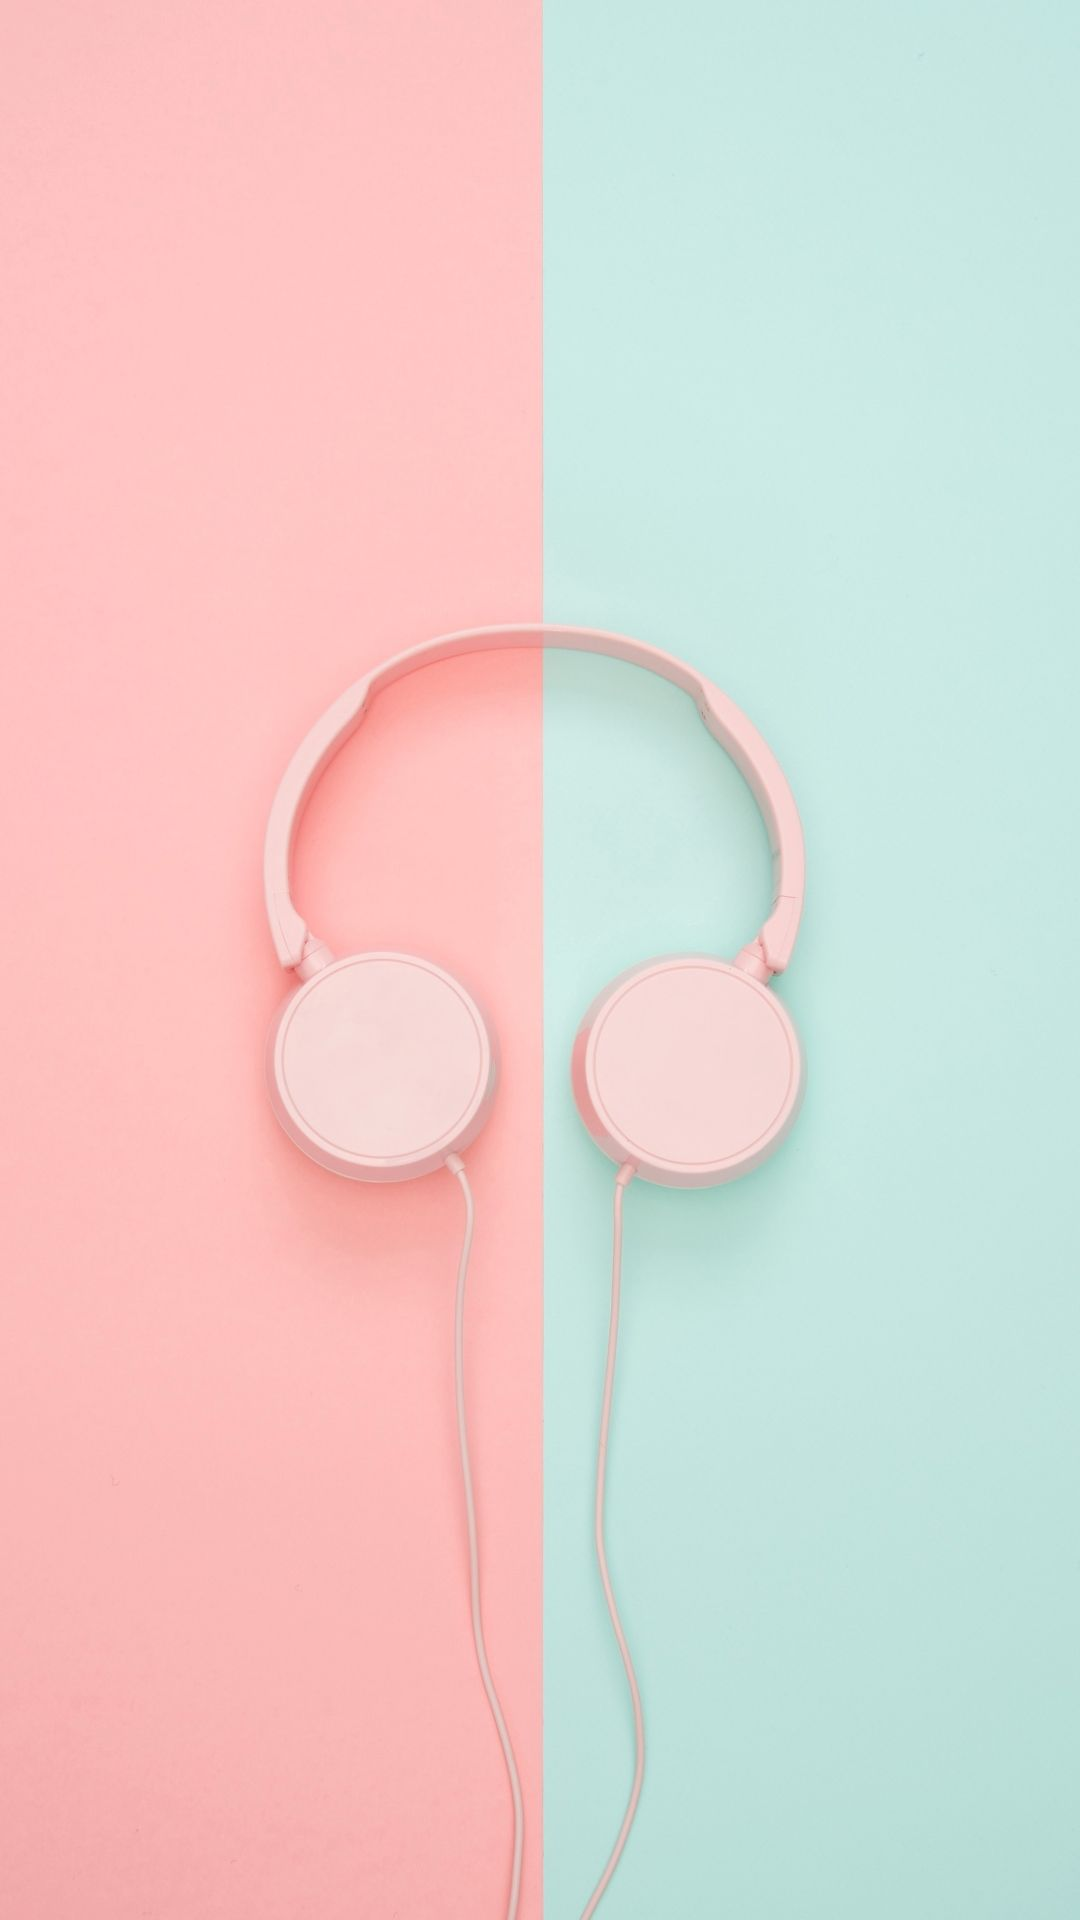 Aesthetic Teal And Pink Wallpaper Hd In 2020 Pink Wallpaper Aesthetic Pastel Wallpaper Music Wallpaper